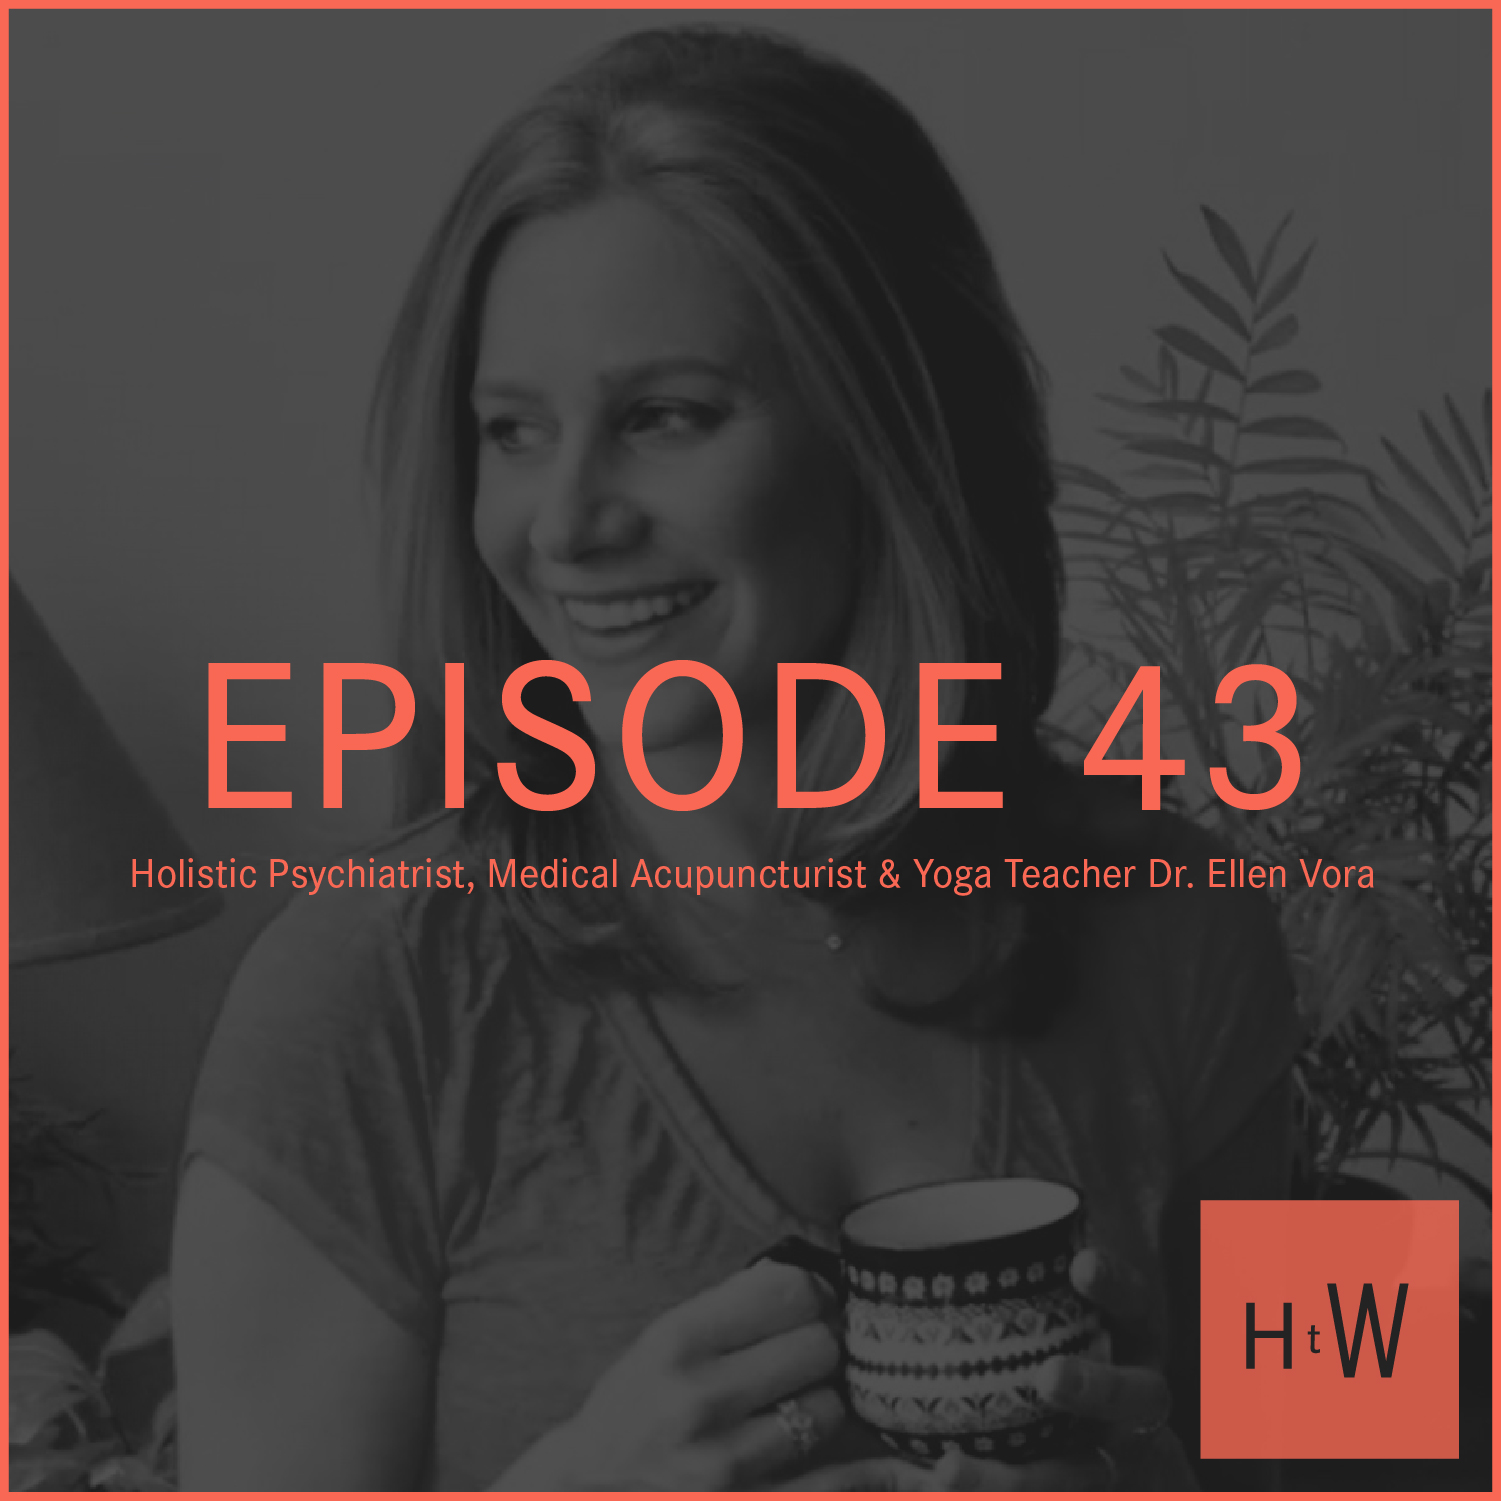 EPISODE 43 :  Dr. Ellen Vora with A New Approach to Mental Health